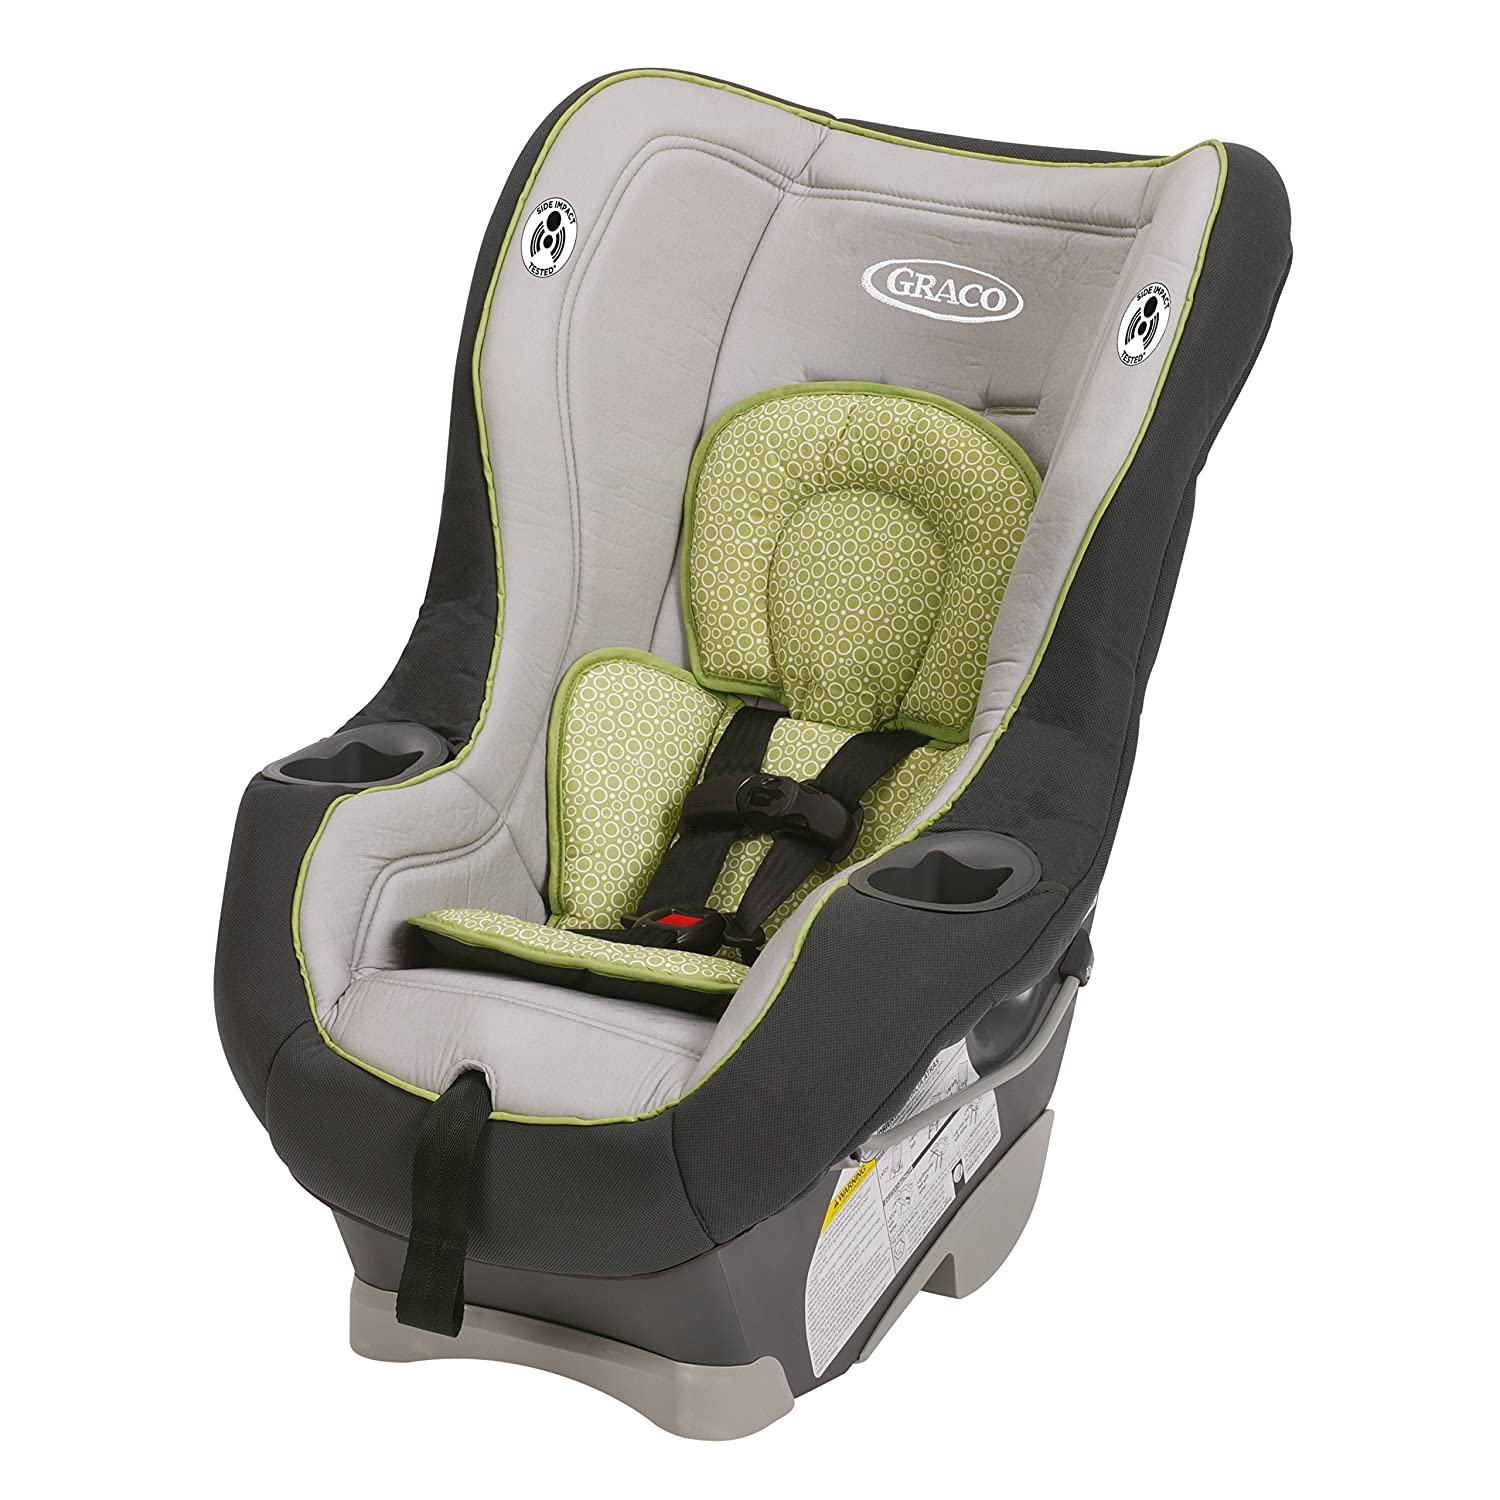 Parts for car seats likewise graco replacement parts for car - Ready Ride Convertible Car Seat Myride 65 Convertible Car Seat Contender 65 Convertible Car Seat Size4me 65 Convertible Car Seat